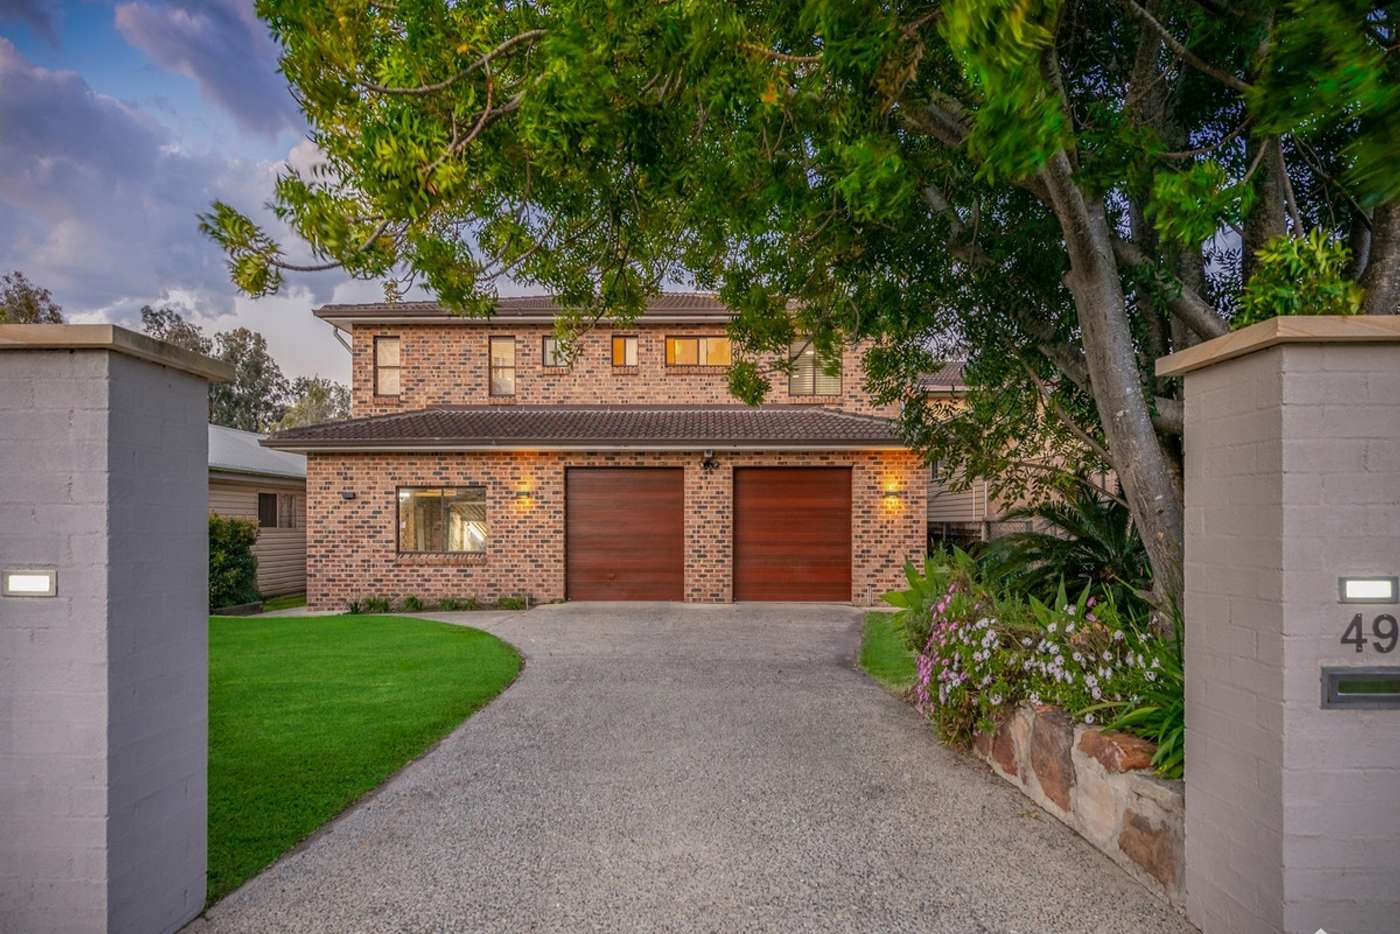 Main view of Homely house listing, 49 Lakedge Avenue, Berkeley Vale NSW 2261